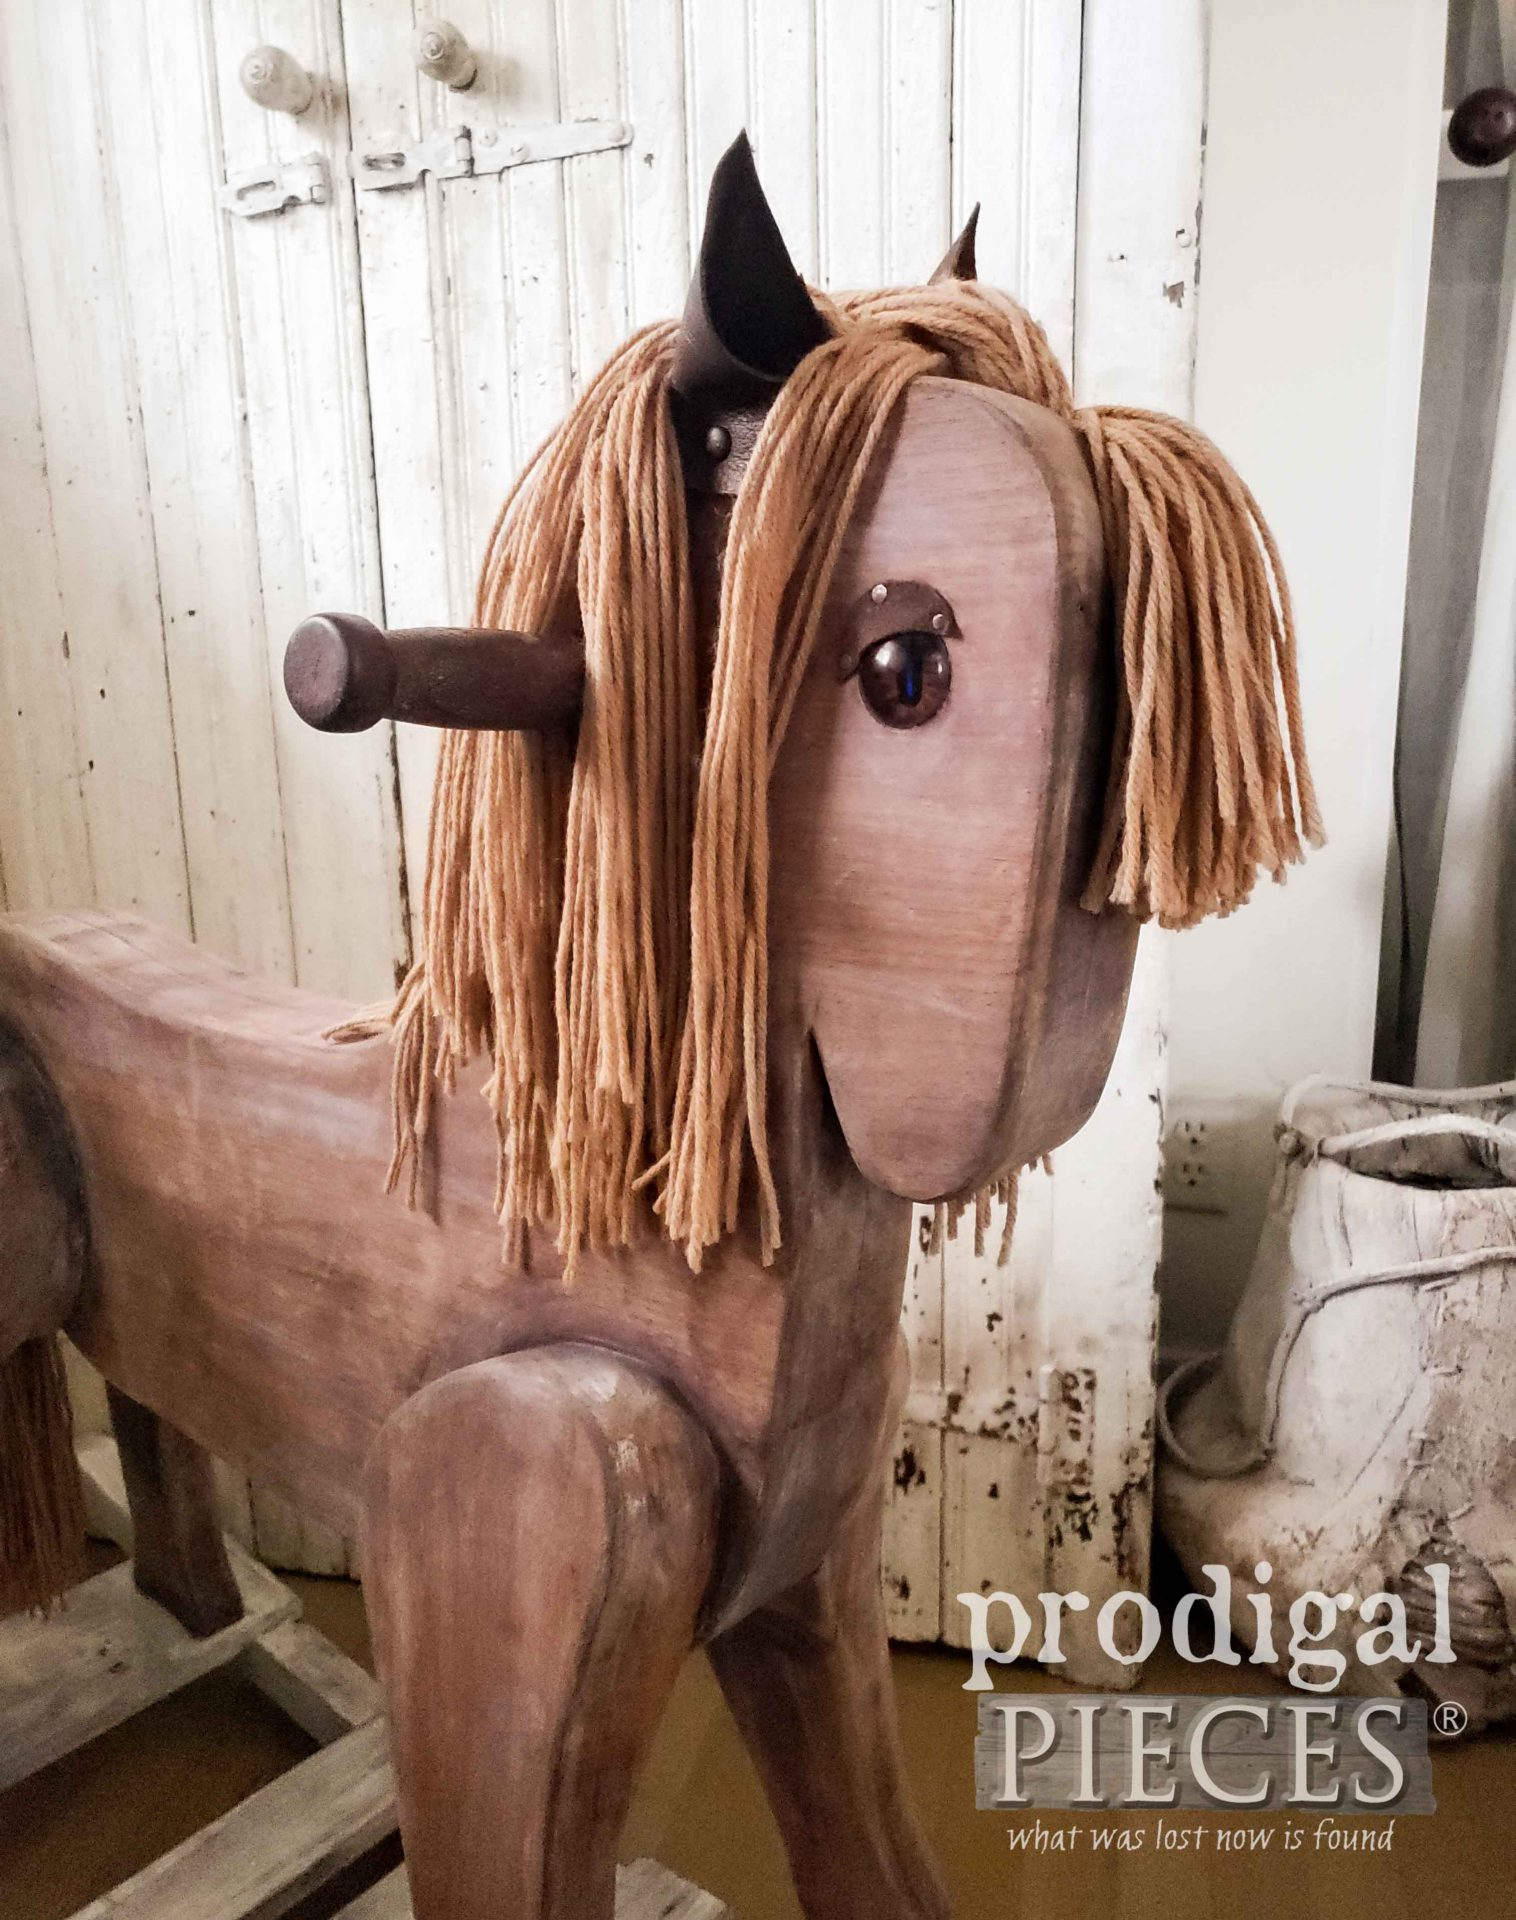 Rustic Farmhouse Handmade Wooden Rocking Horse by Larissa of Prodigal Pieces | prodigalpieces.com #prodigalpieces #farmhouse #home #horse #homedecor #handmade